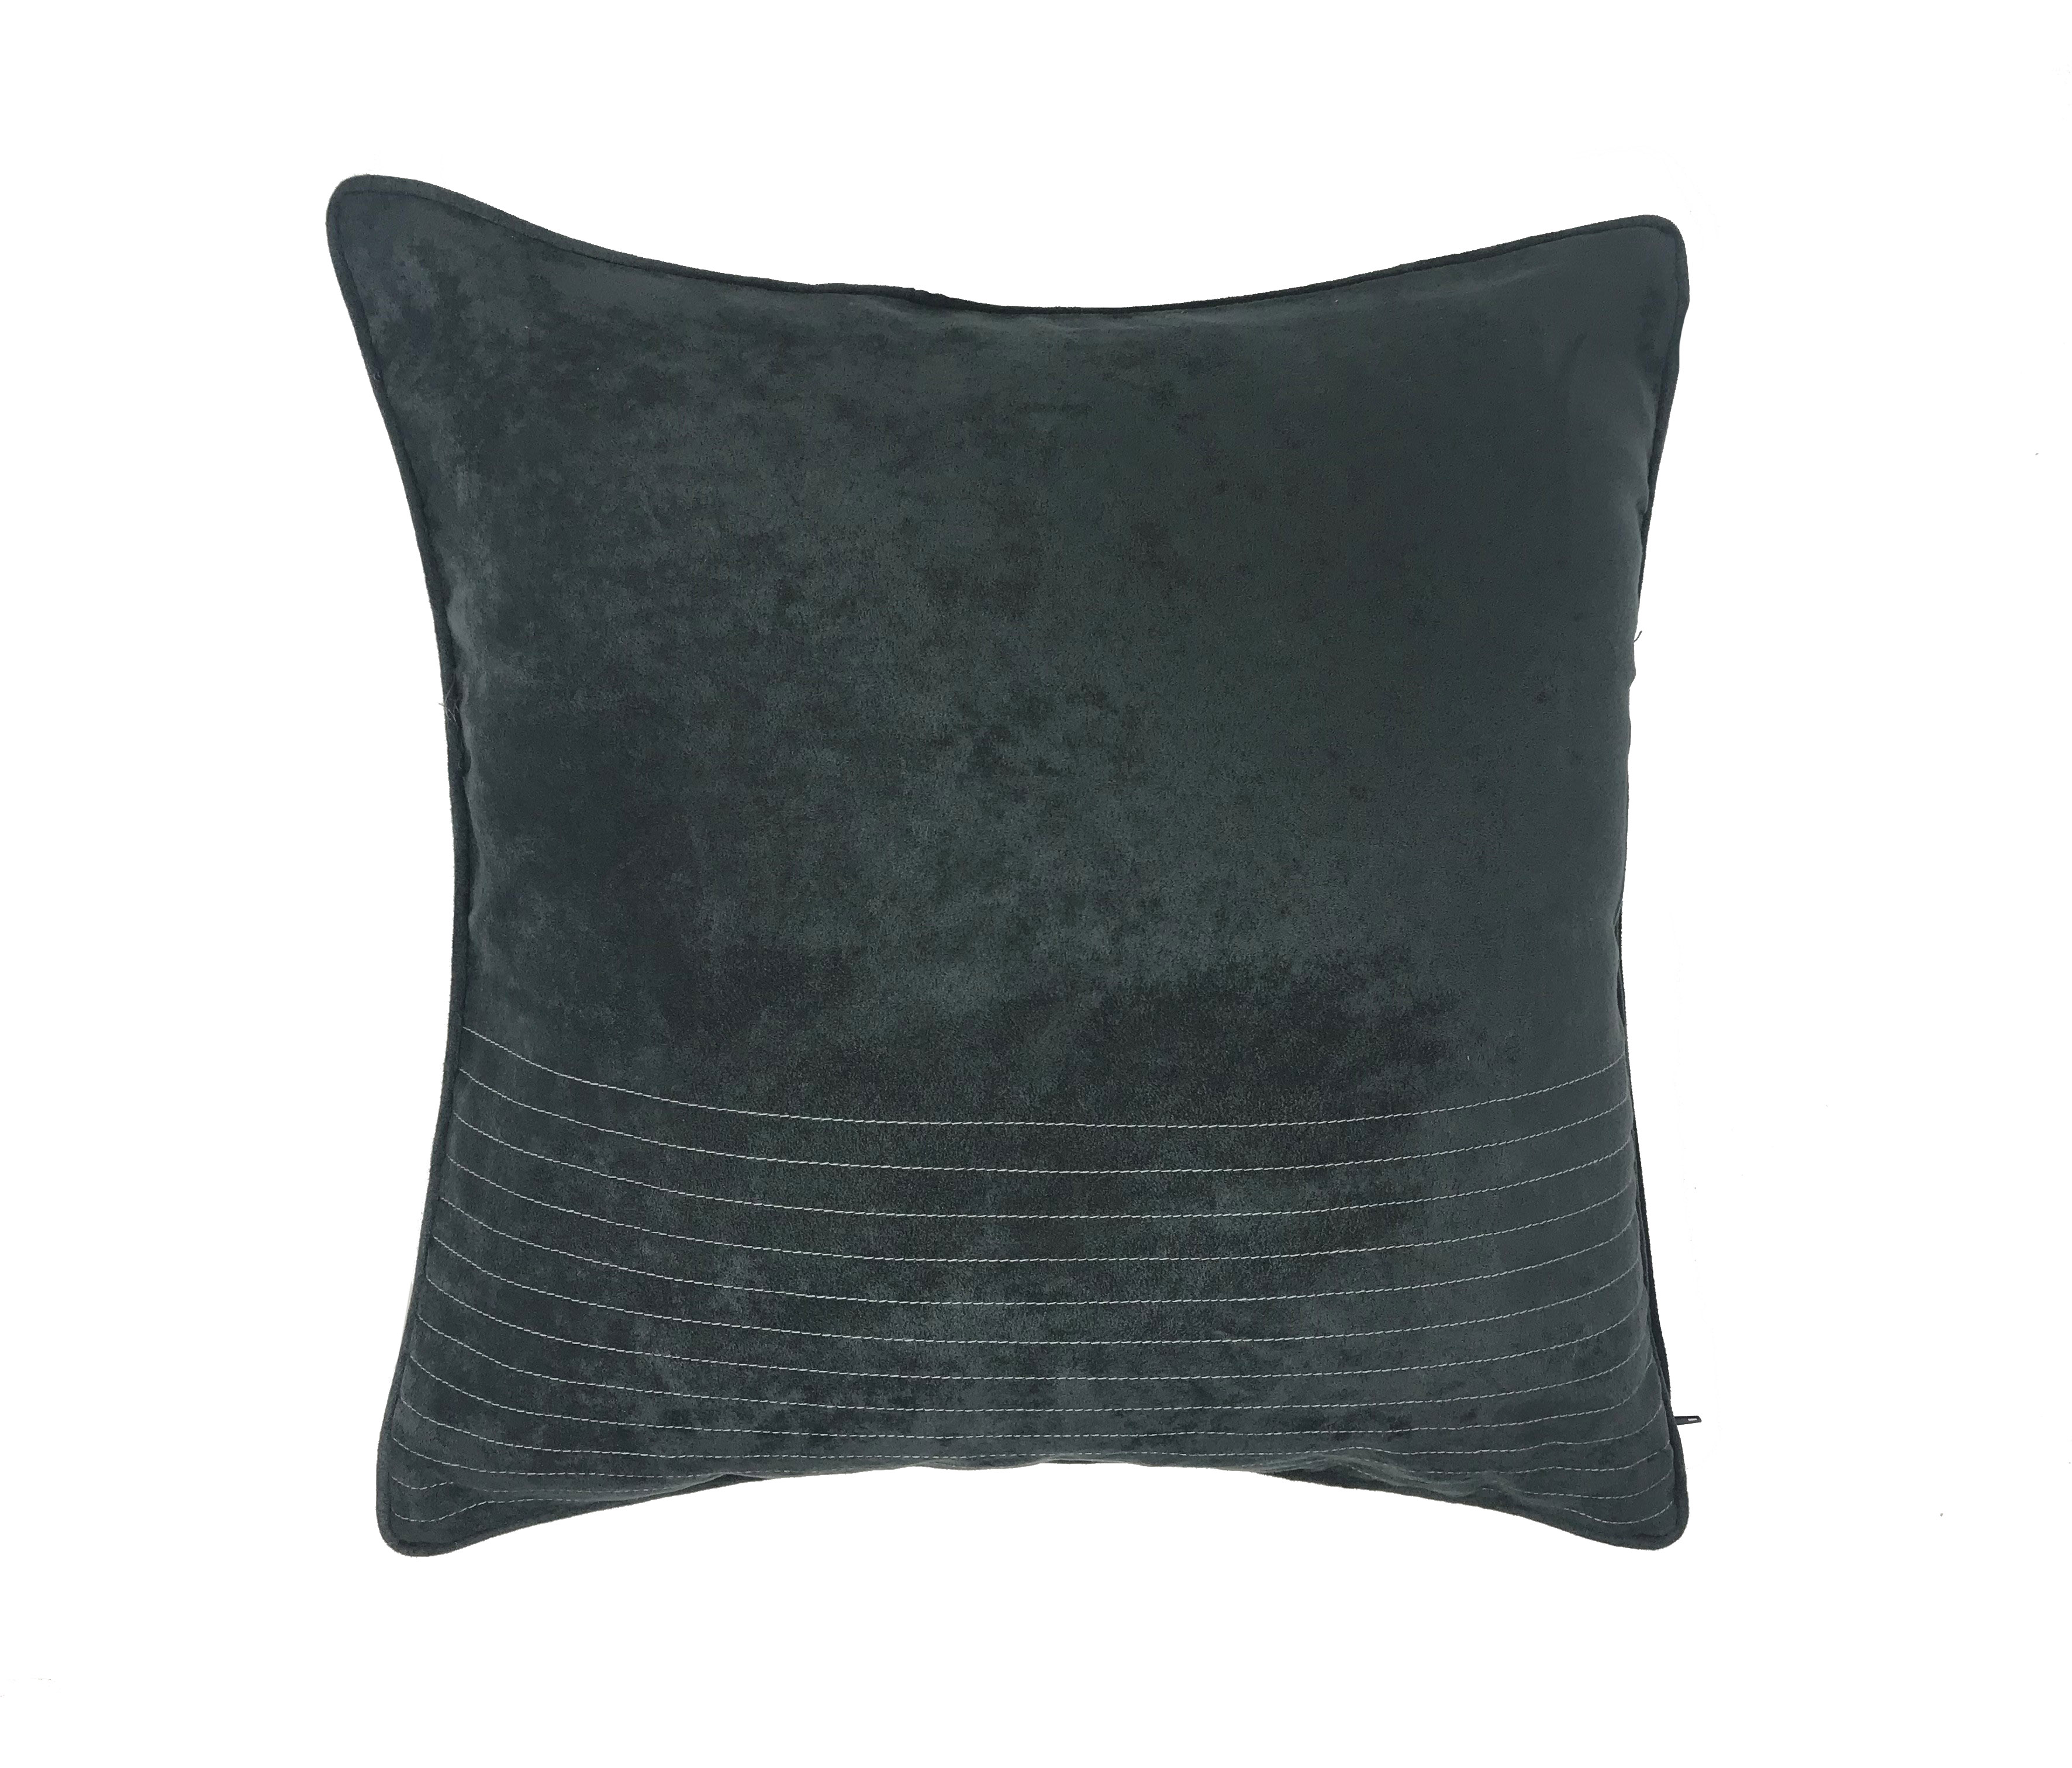 Suede Grey Piped Edge 43cm x 43cm Cushion Cover Only